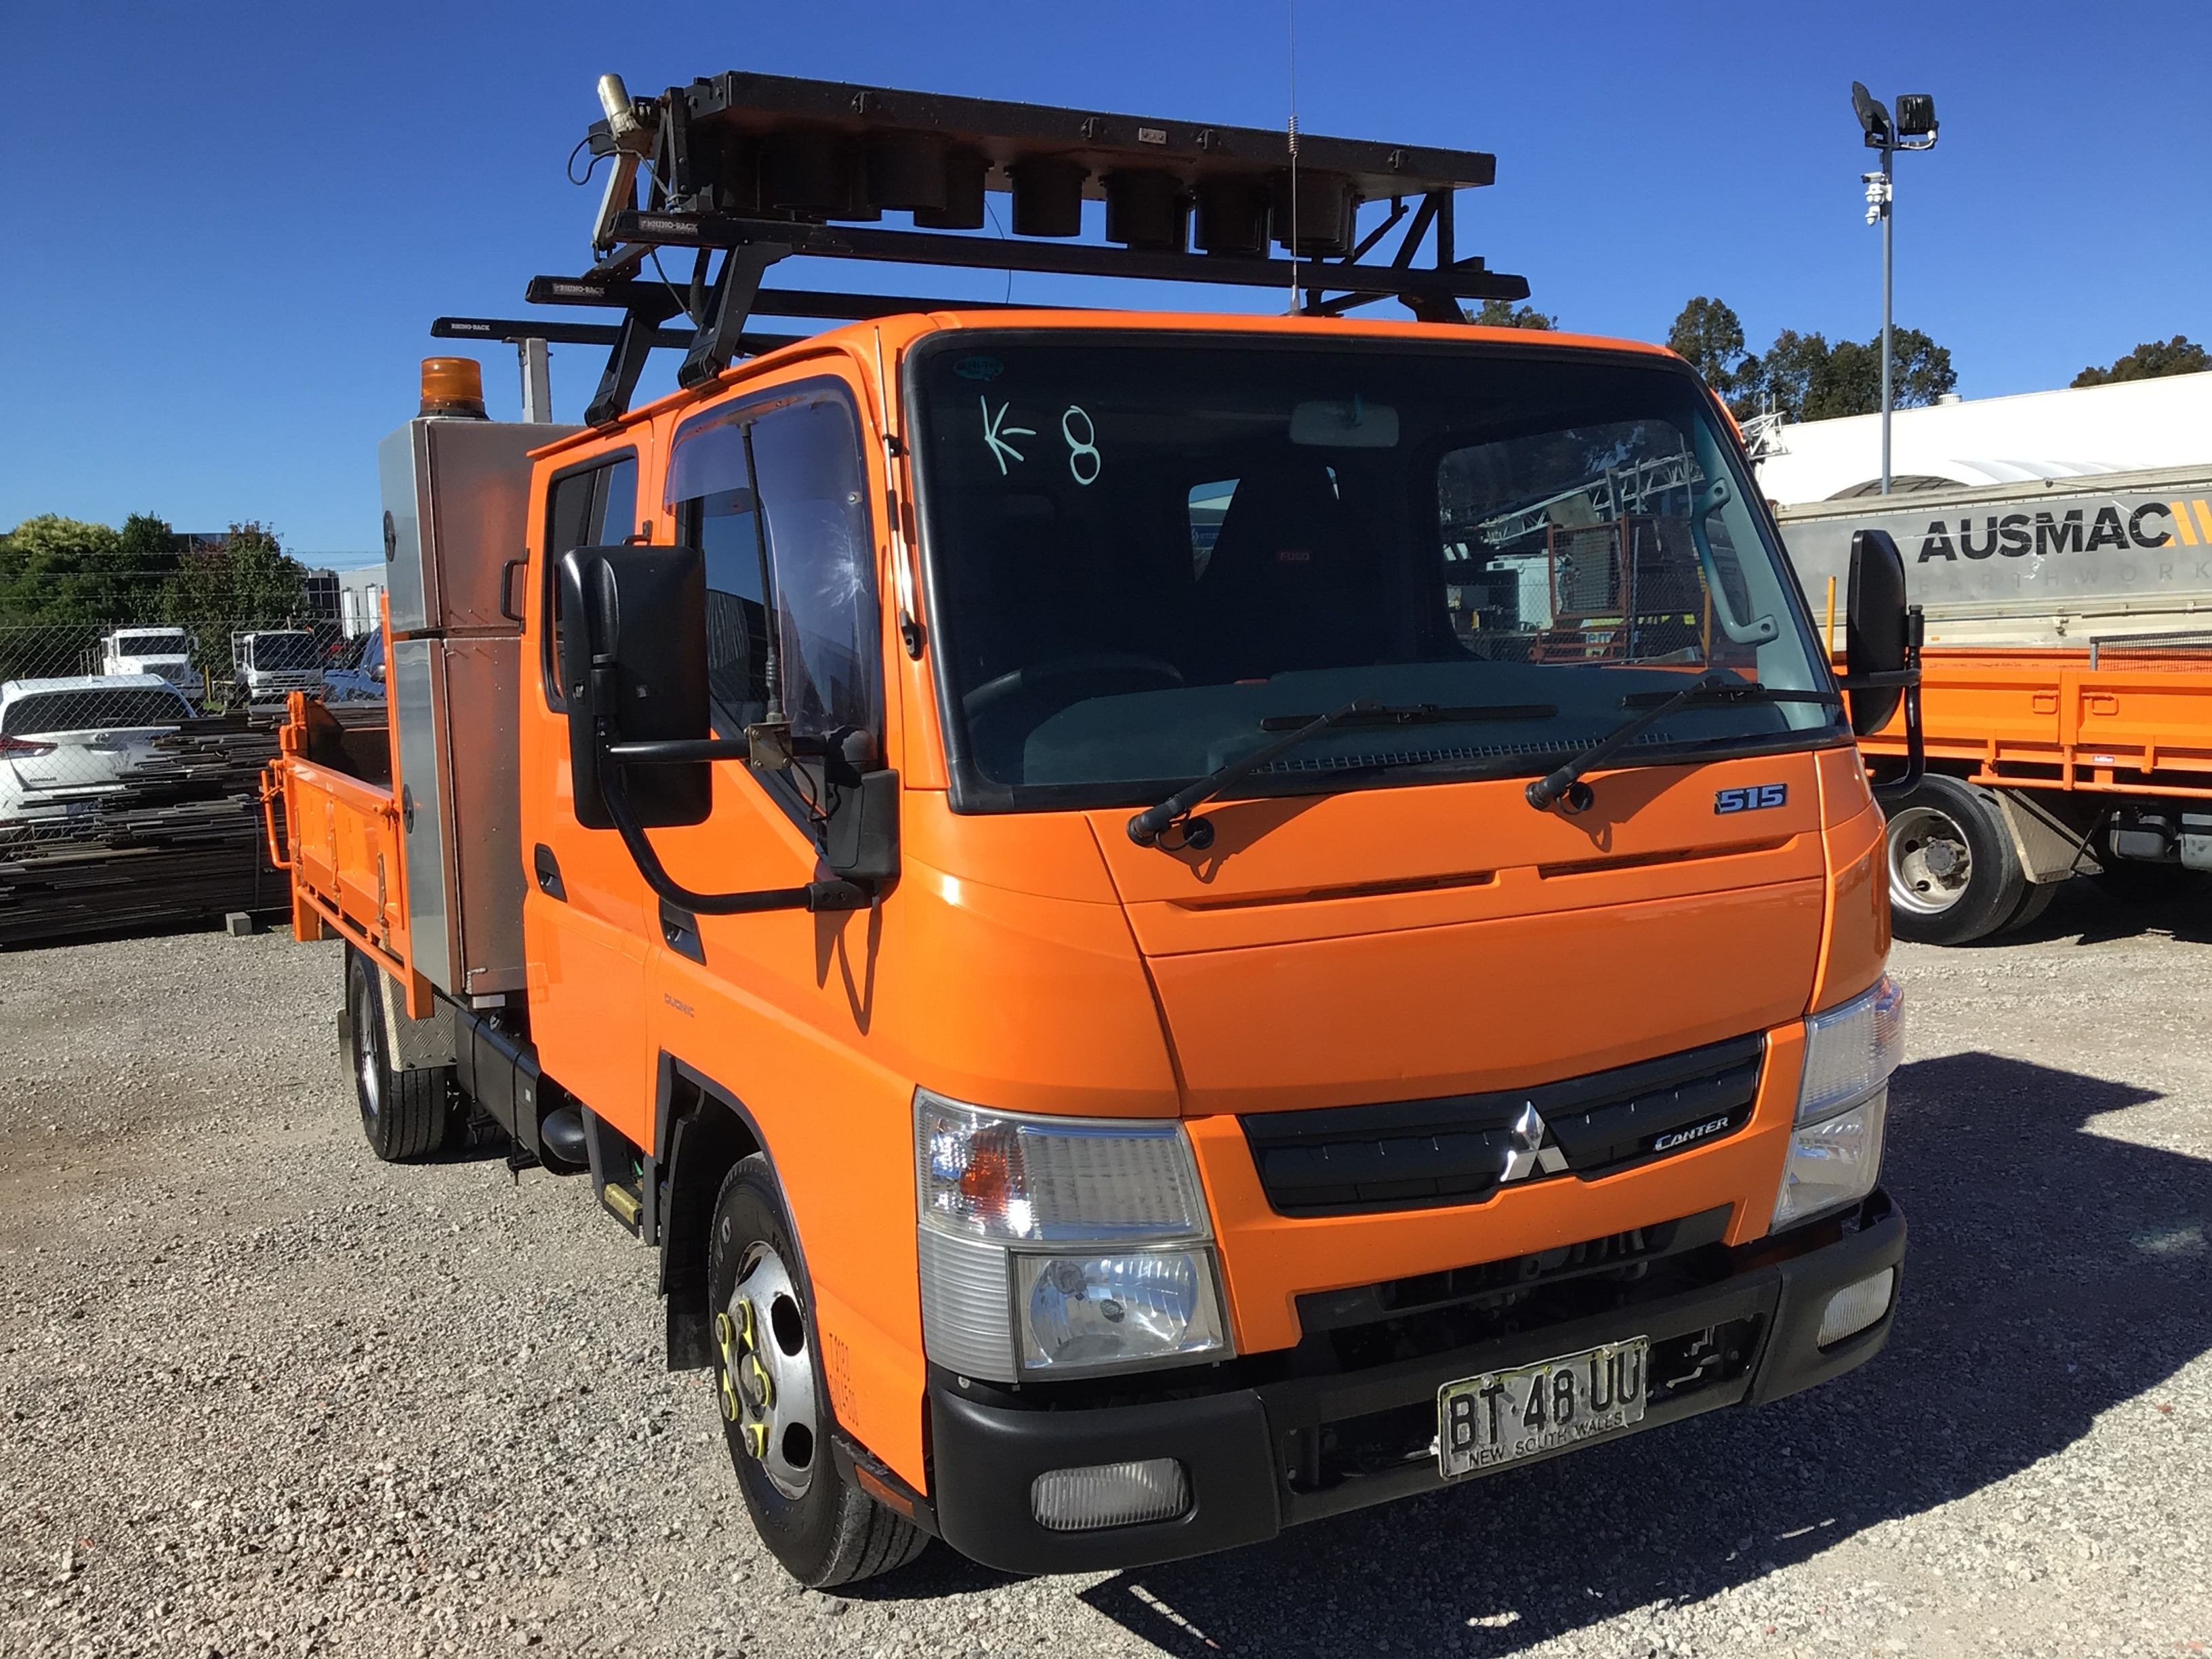 2012 Mitsubishi Canter 515 Dual Cab 4x2 Service Truck with Tipper